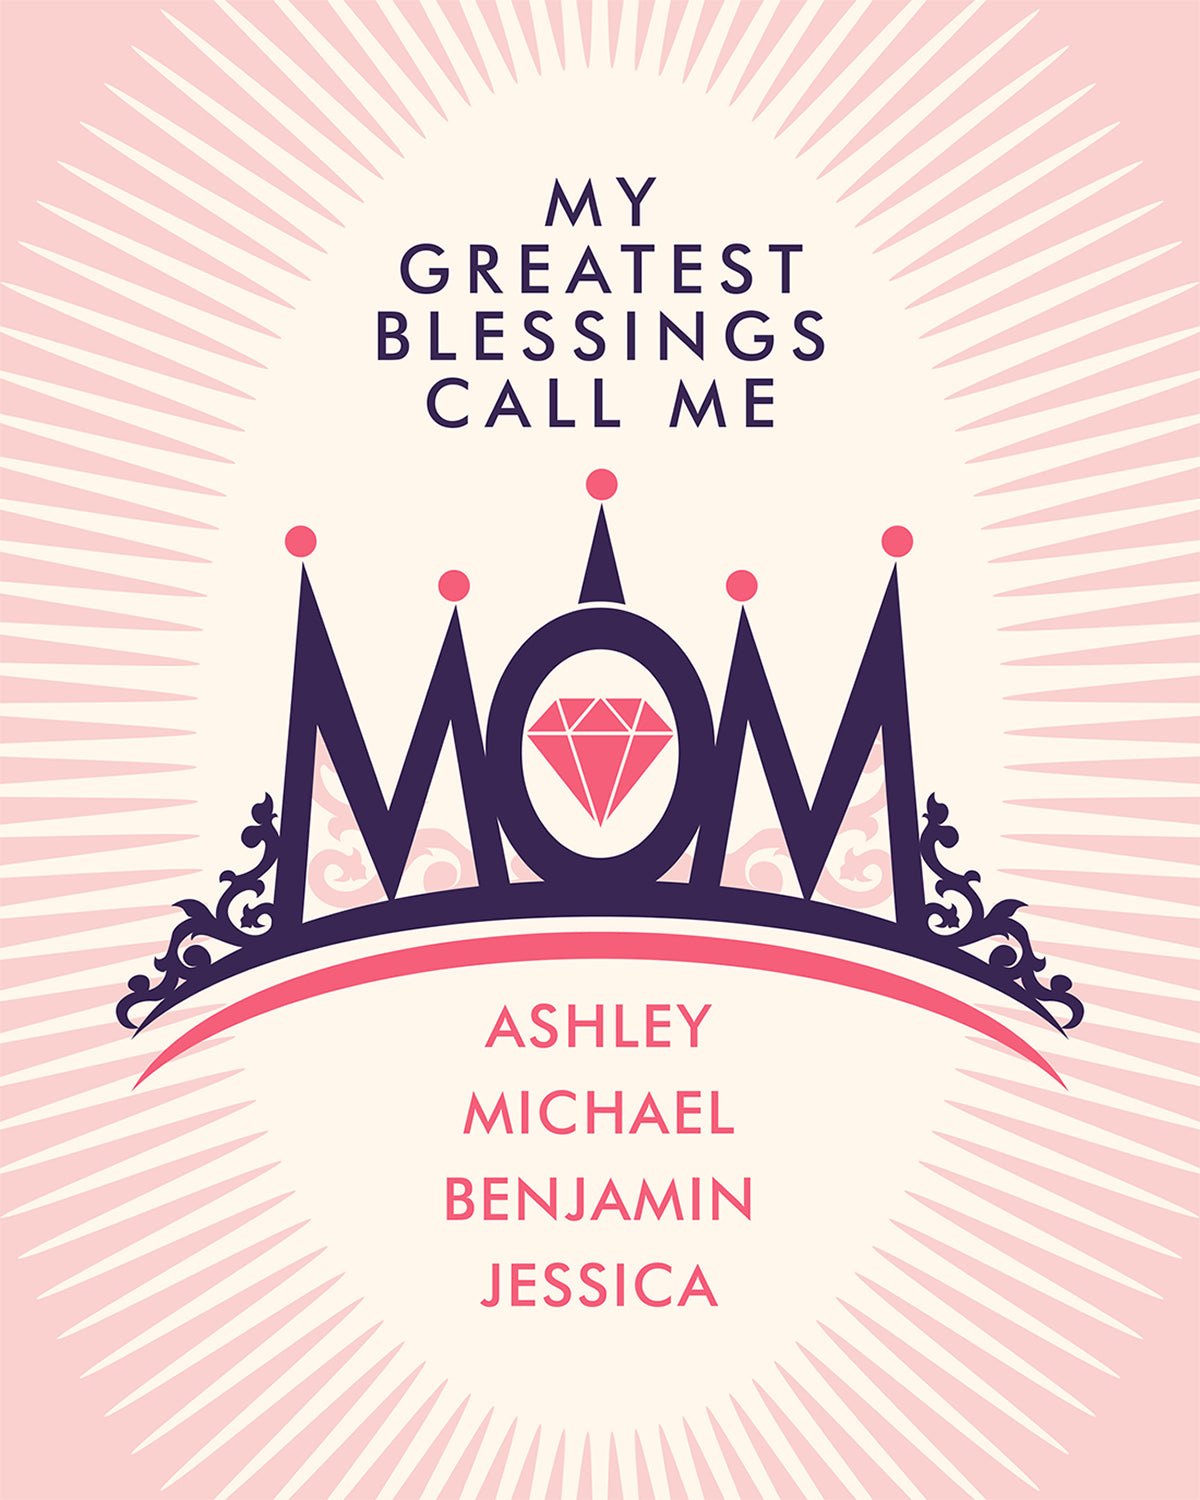 My Greatest Blessings Call Me Mom - Customizable Wall Decor Art - Print, Poster & Canvas Sizes - Gift for Mom From Children